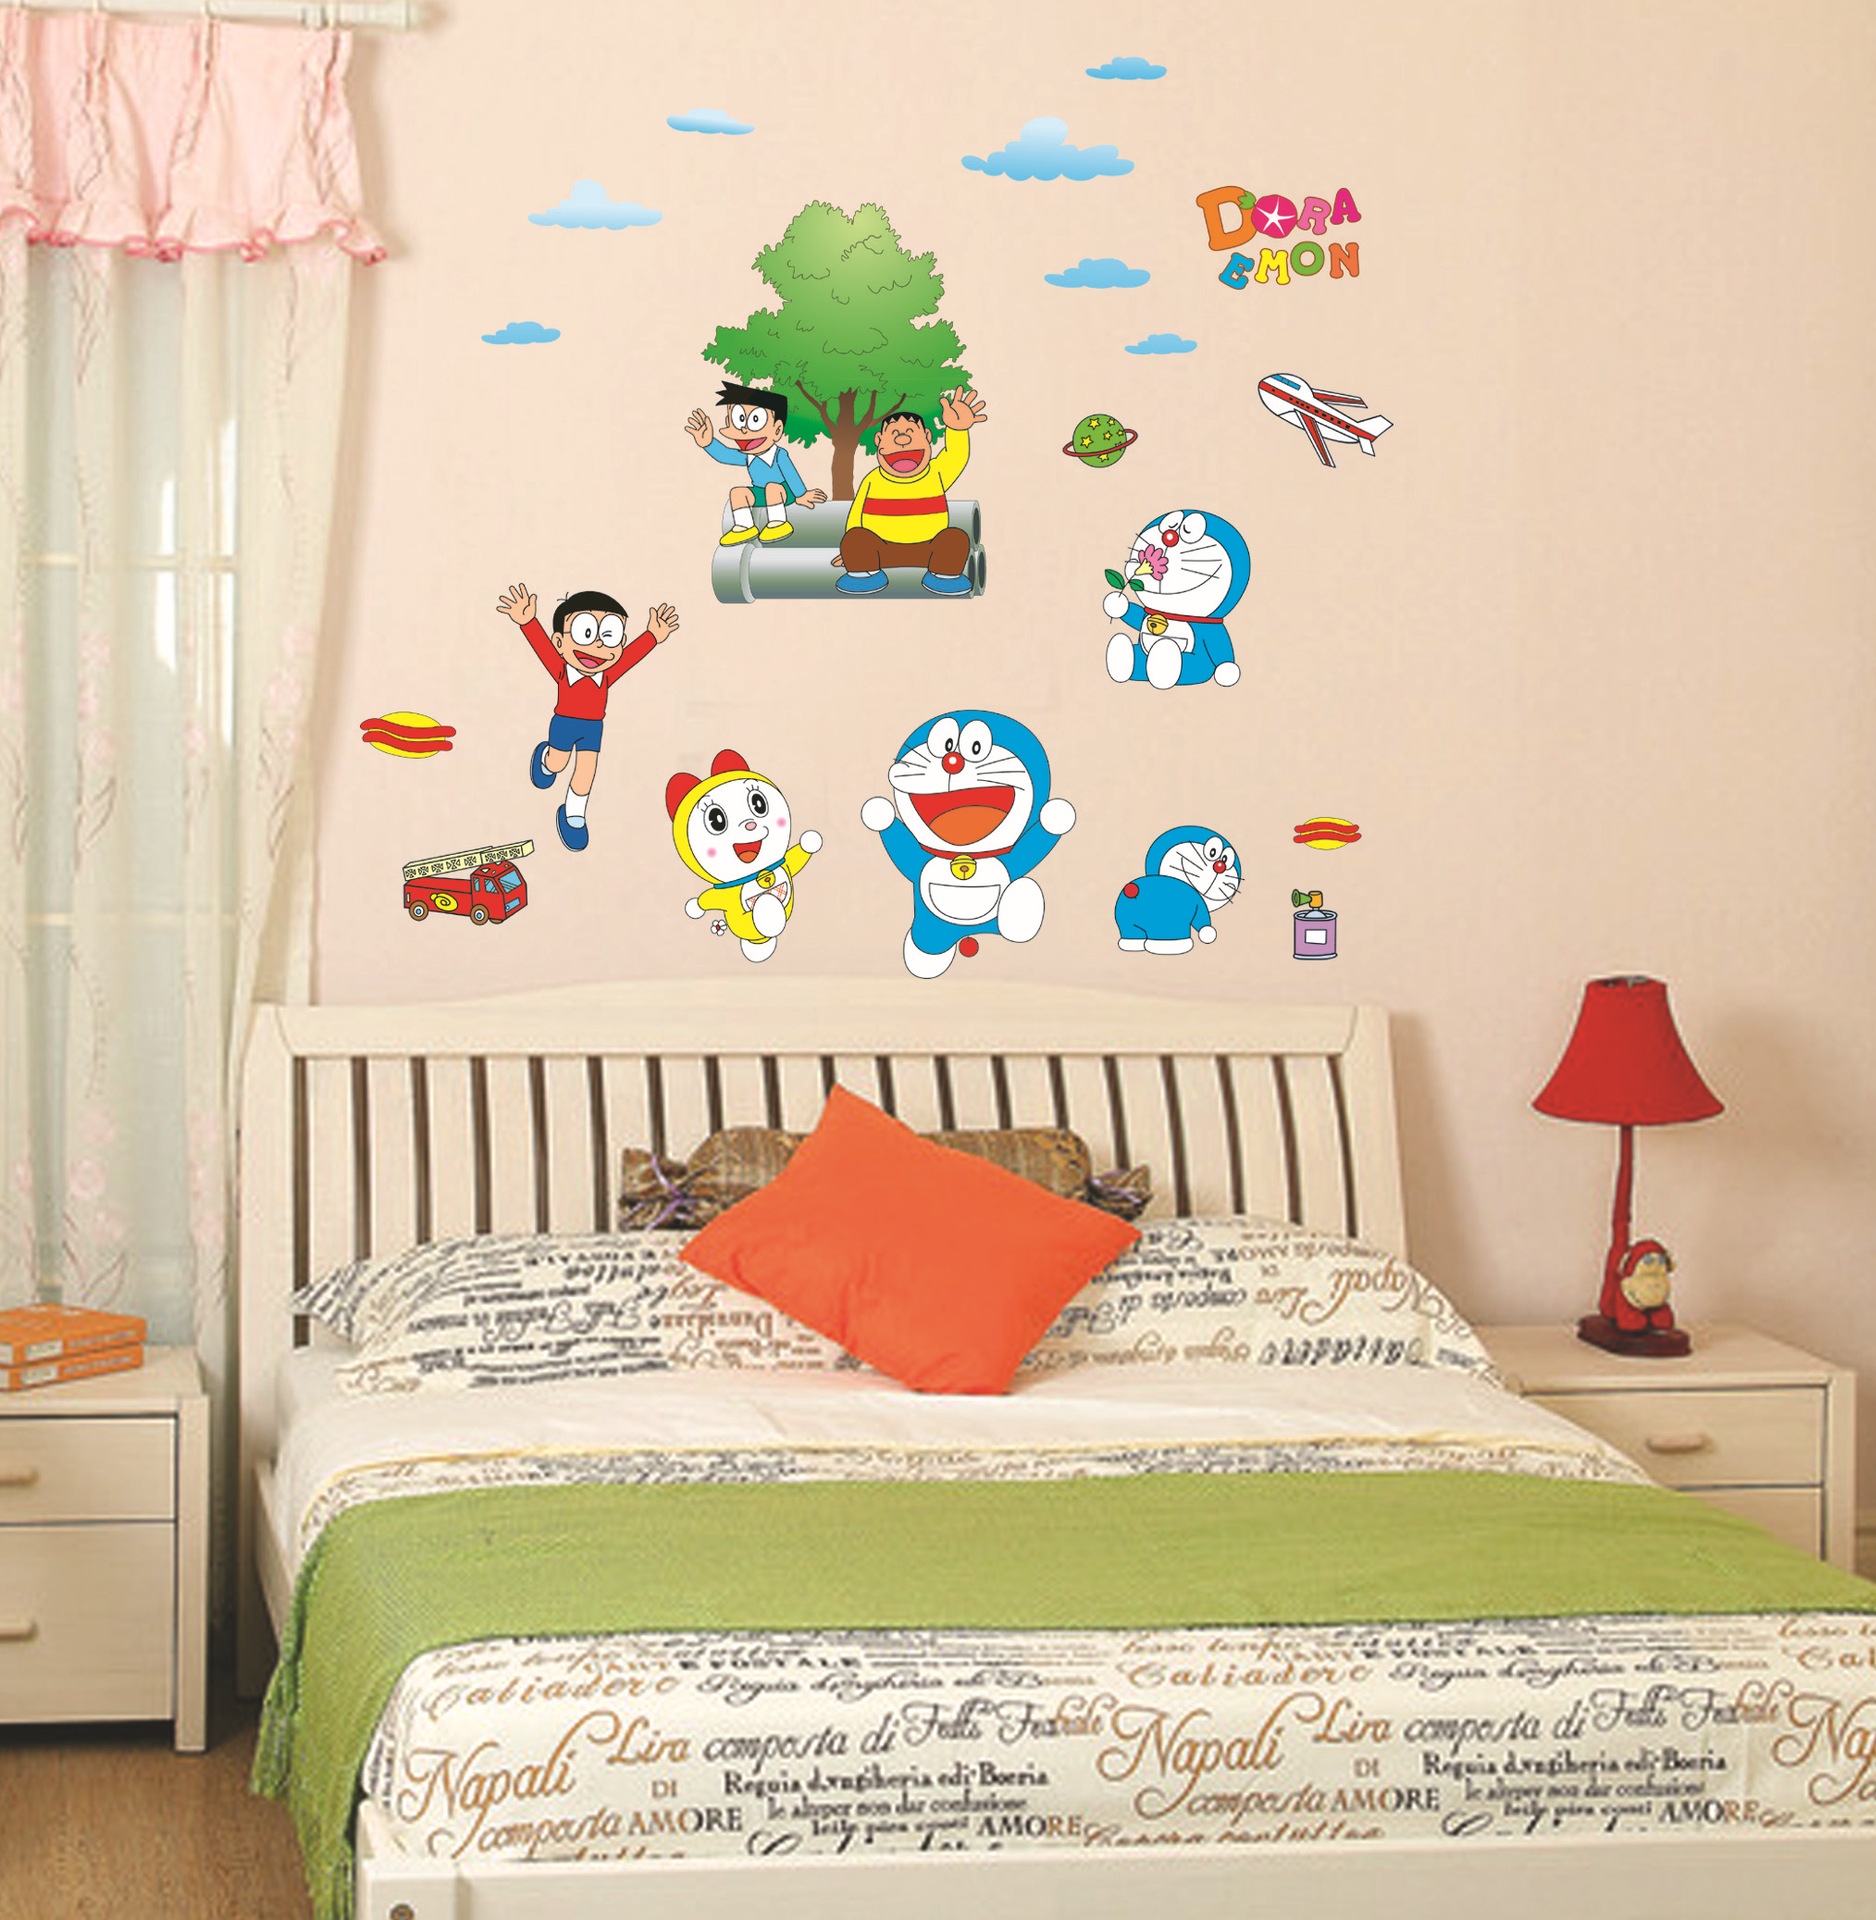 Bedroom Decor Stickers compare prices on doraemon wall sticker- online shopping/buy low